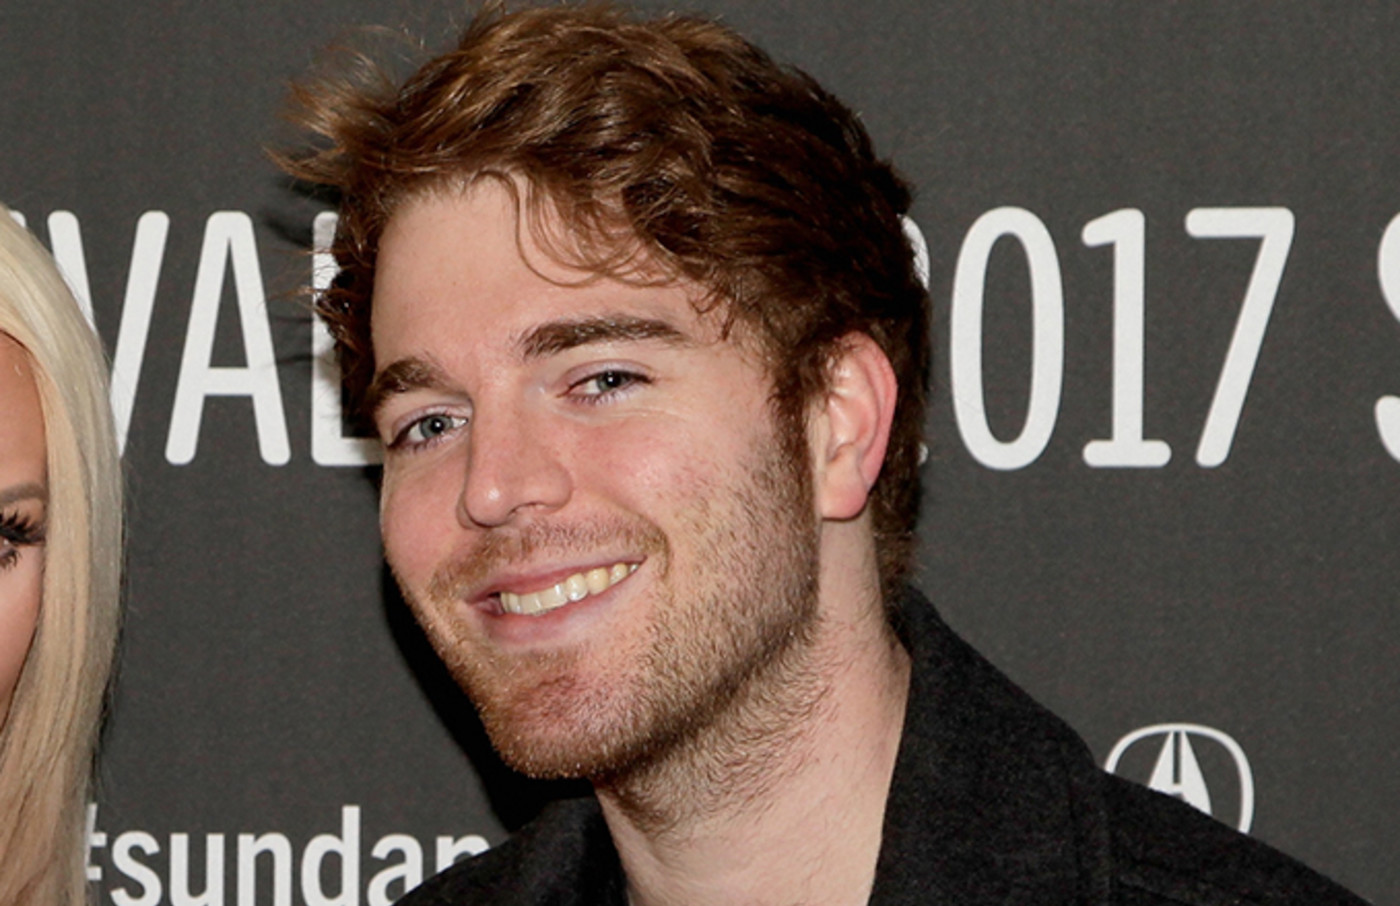 YouTuber Shane Dawson, who says he definitely didn't have sex with his cat.